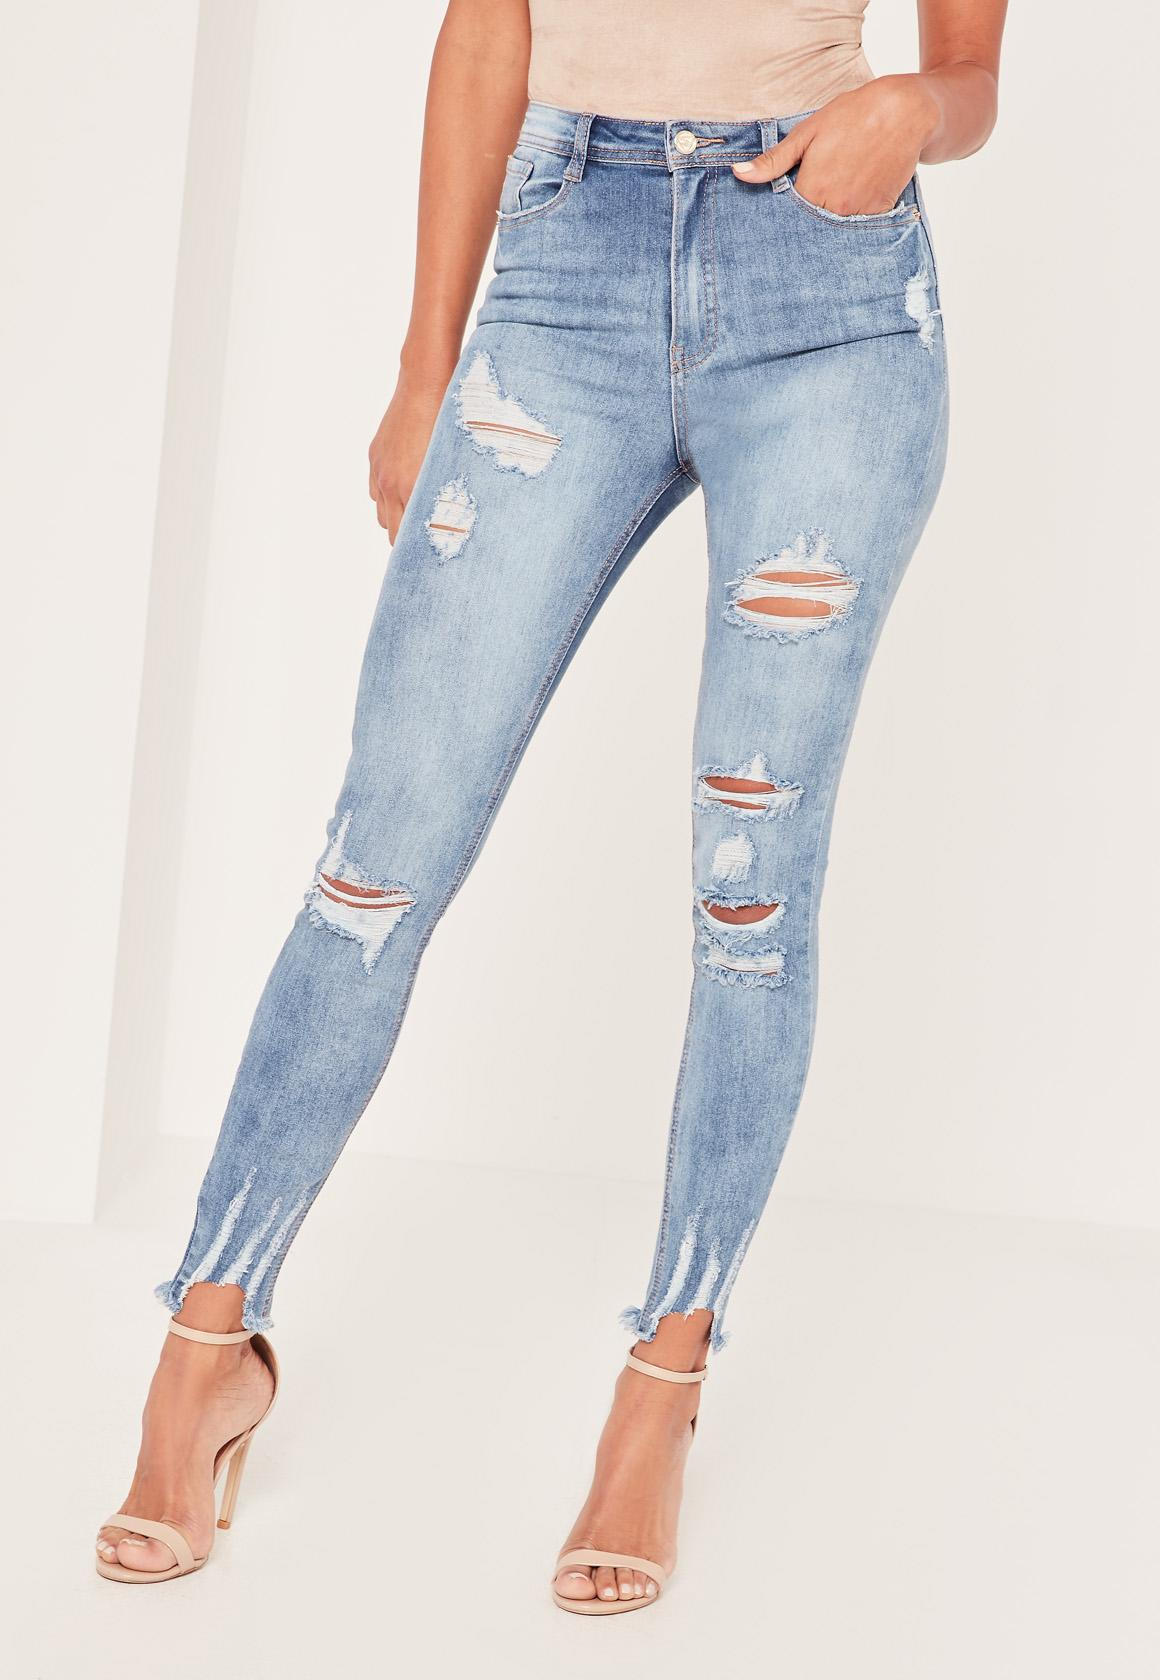 Missguided - Blue Sinner High Waisted Authentic Ripped Skinny Jeans - Lyst.  View fullscreen d8bcf603a016